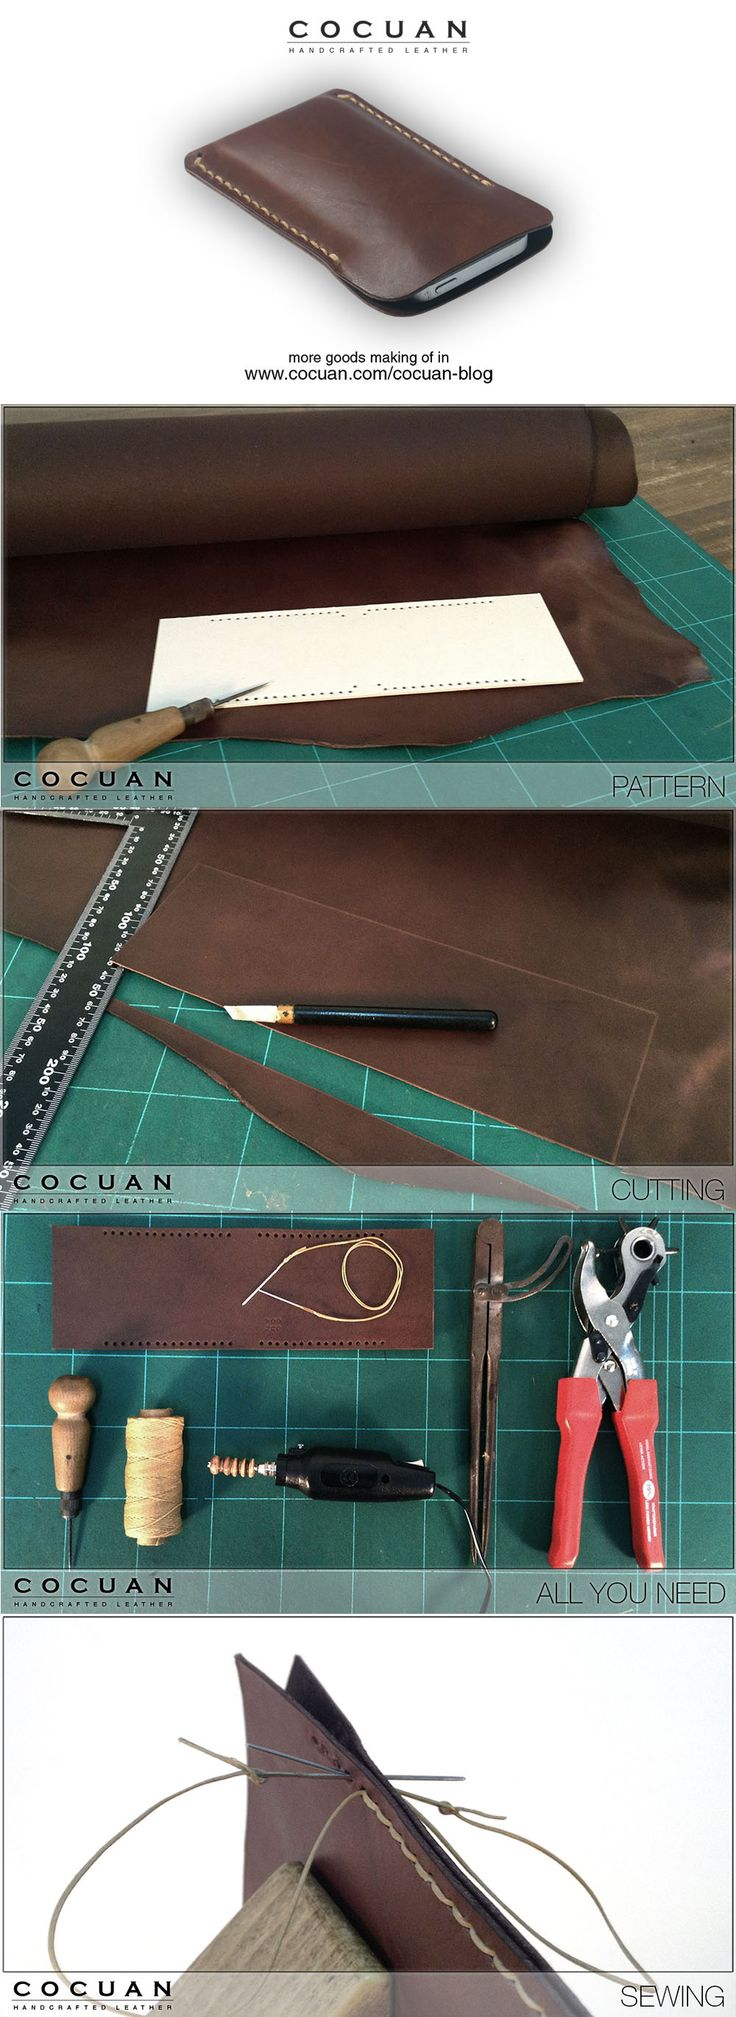 Iphone case making of www.cocuan.com